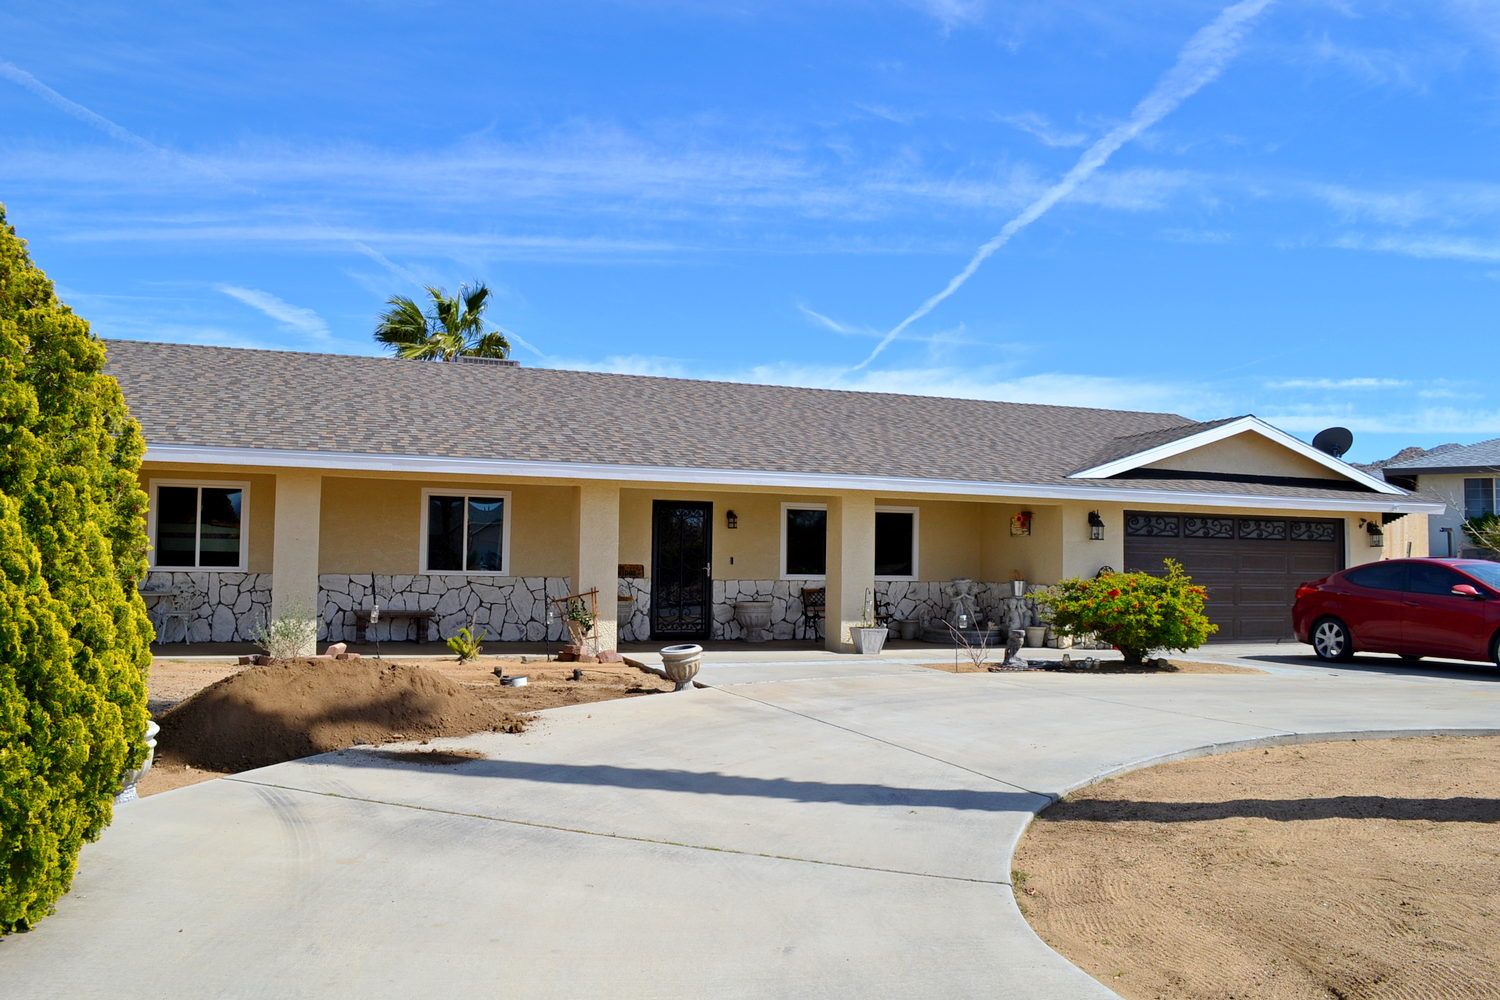 Project: Window Replacement and Texture Coating in Yucca Valley